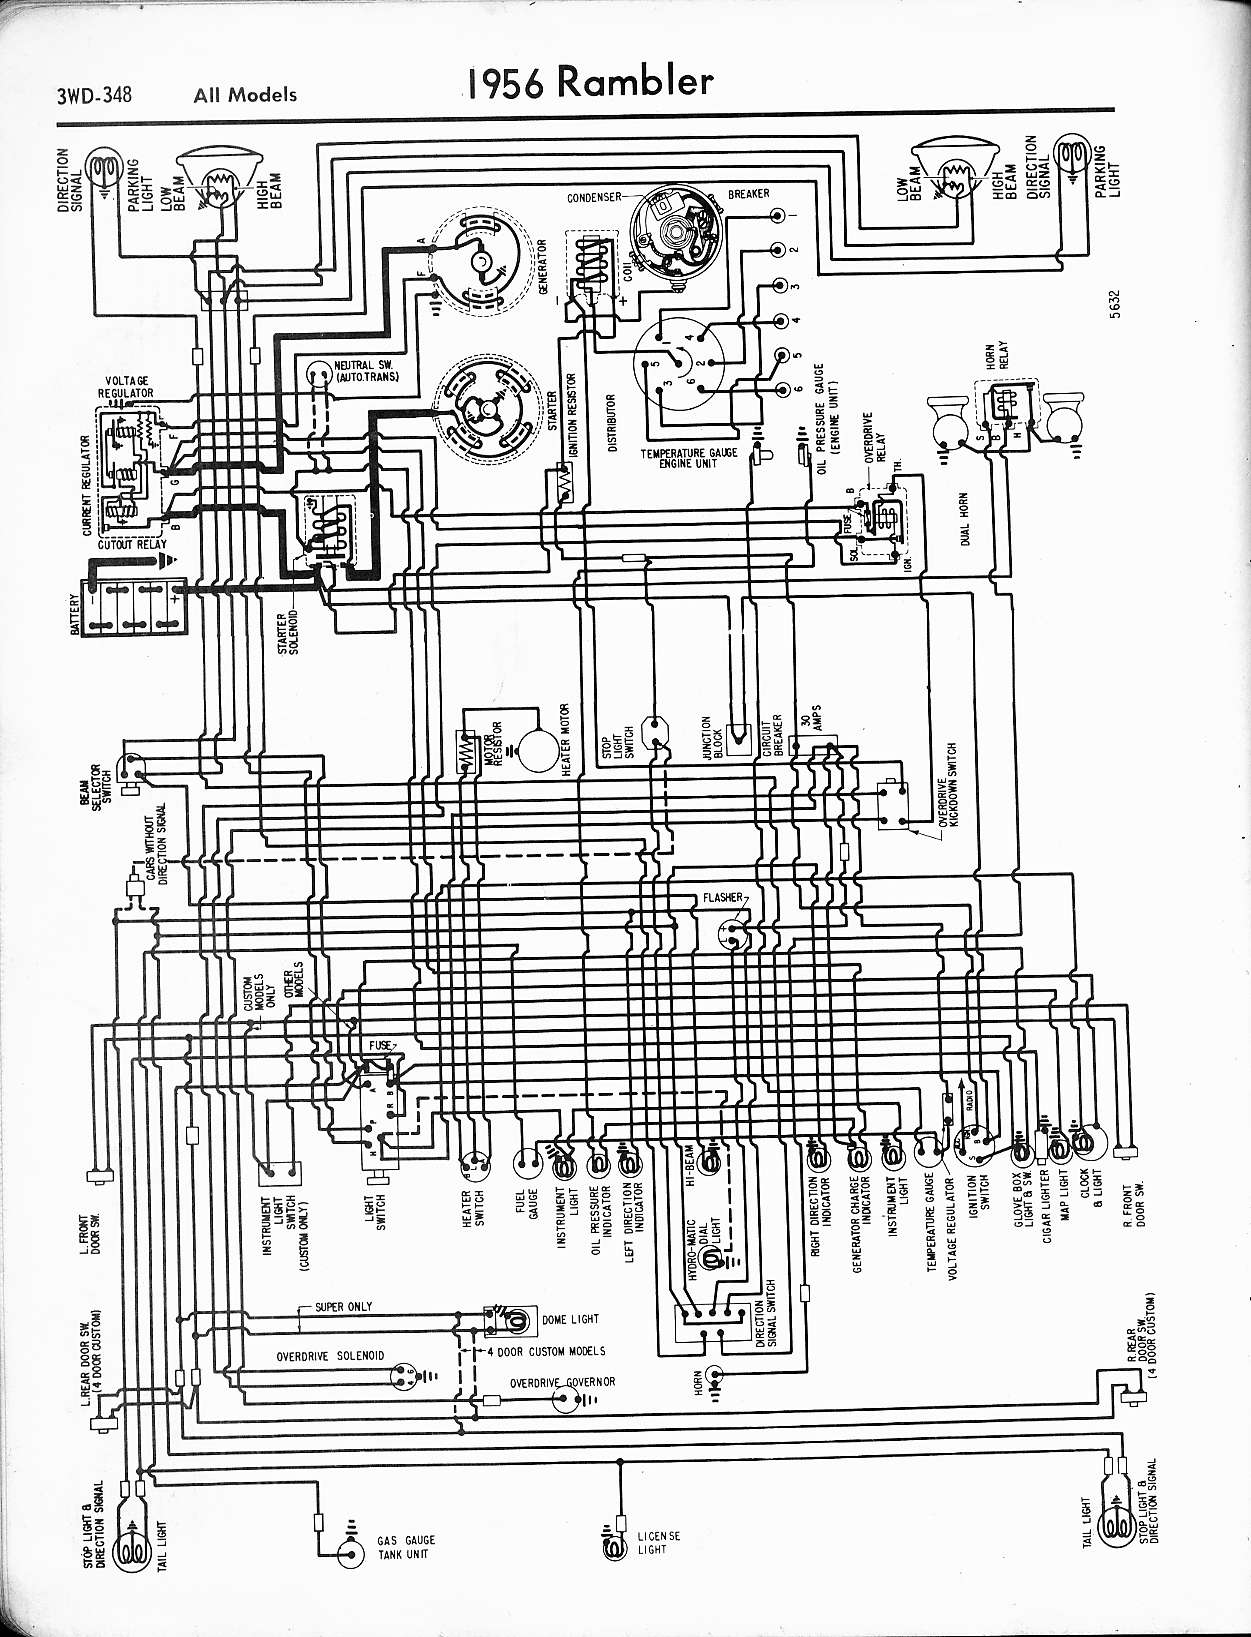 Peugeot 406 Cooling Fan Wiring Diagram : Porsche service manual wiring diagram get